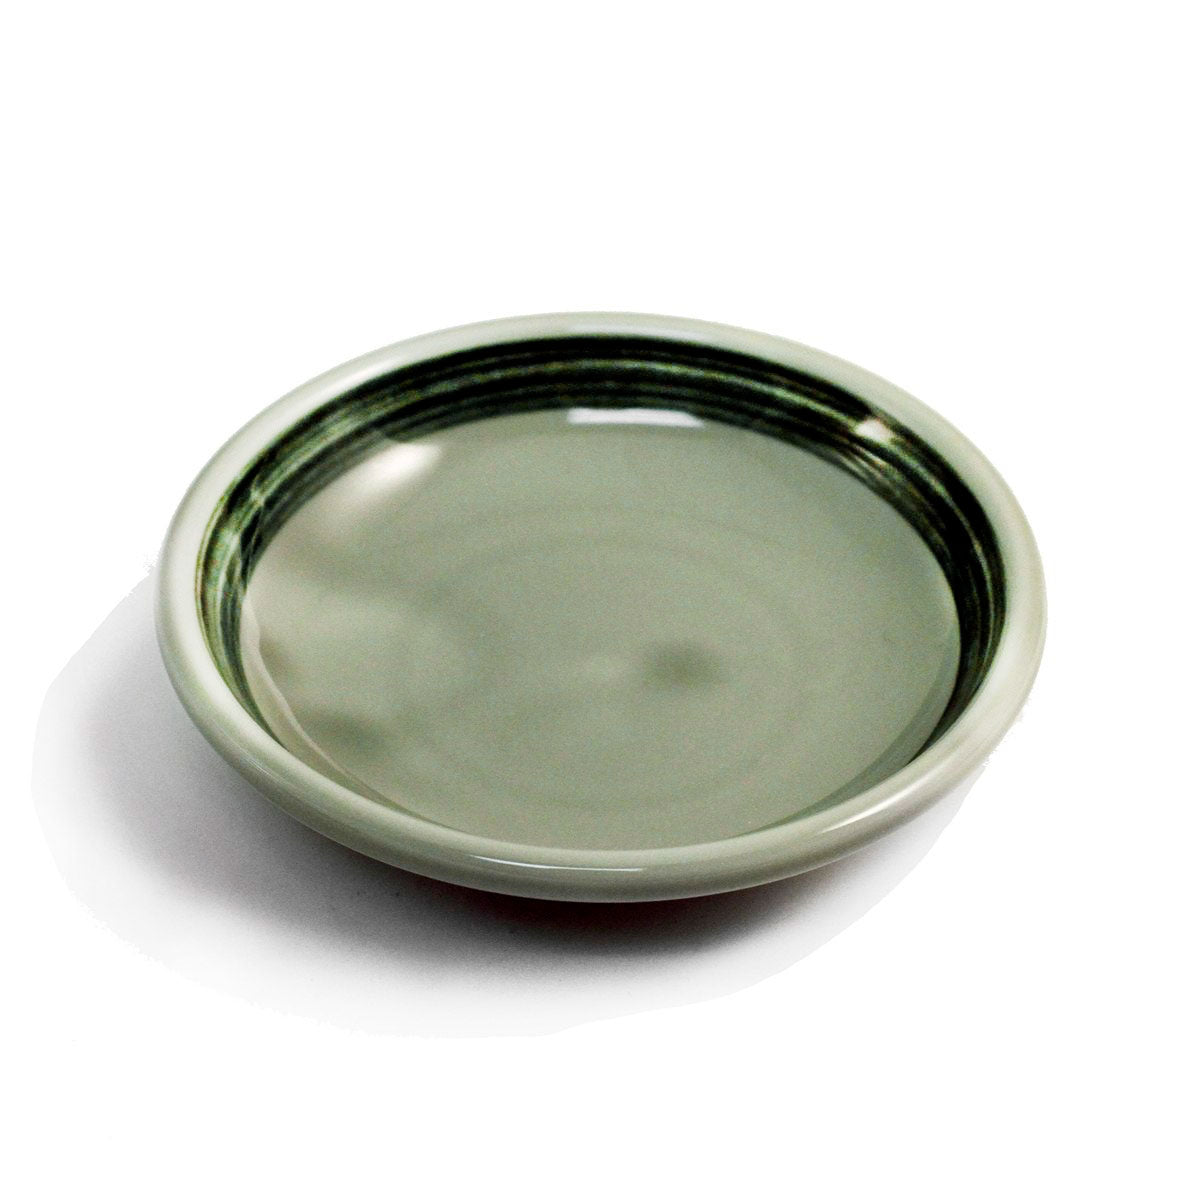 "Sage Soy Sauce Dish with Green Border 3.75"" dia"